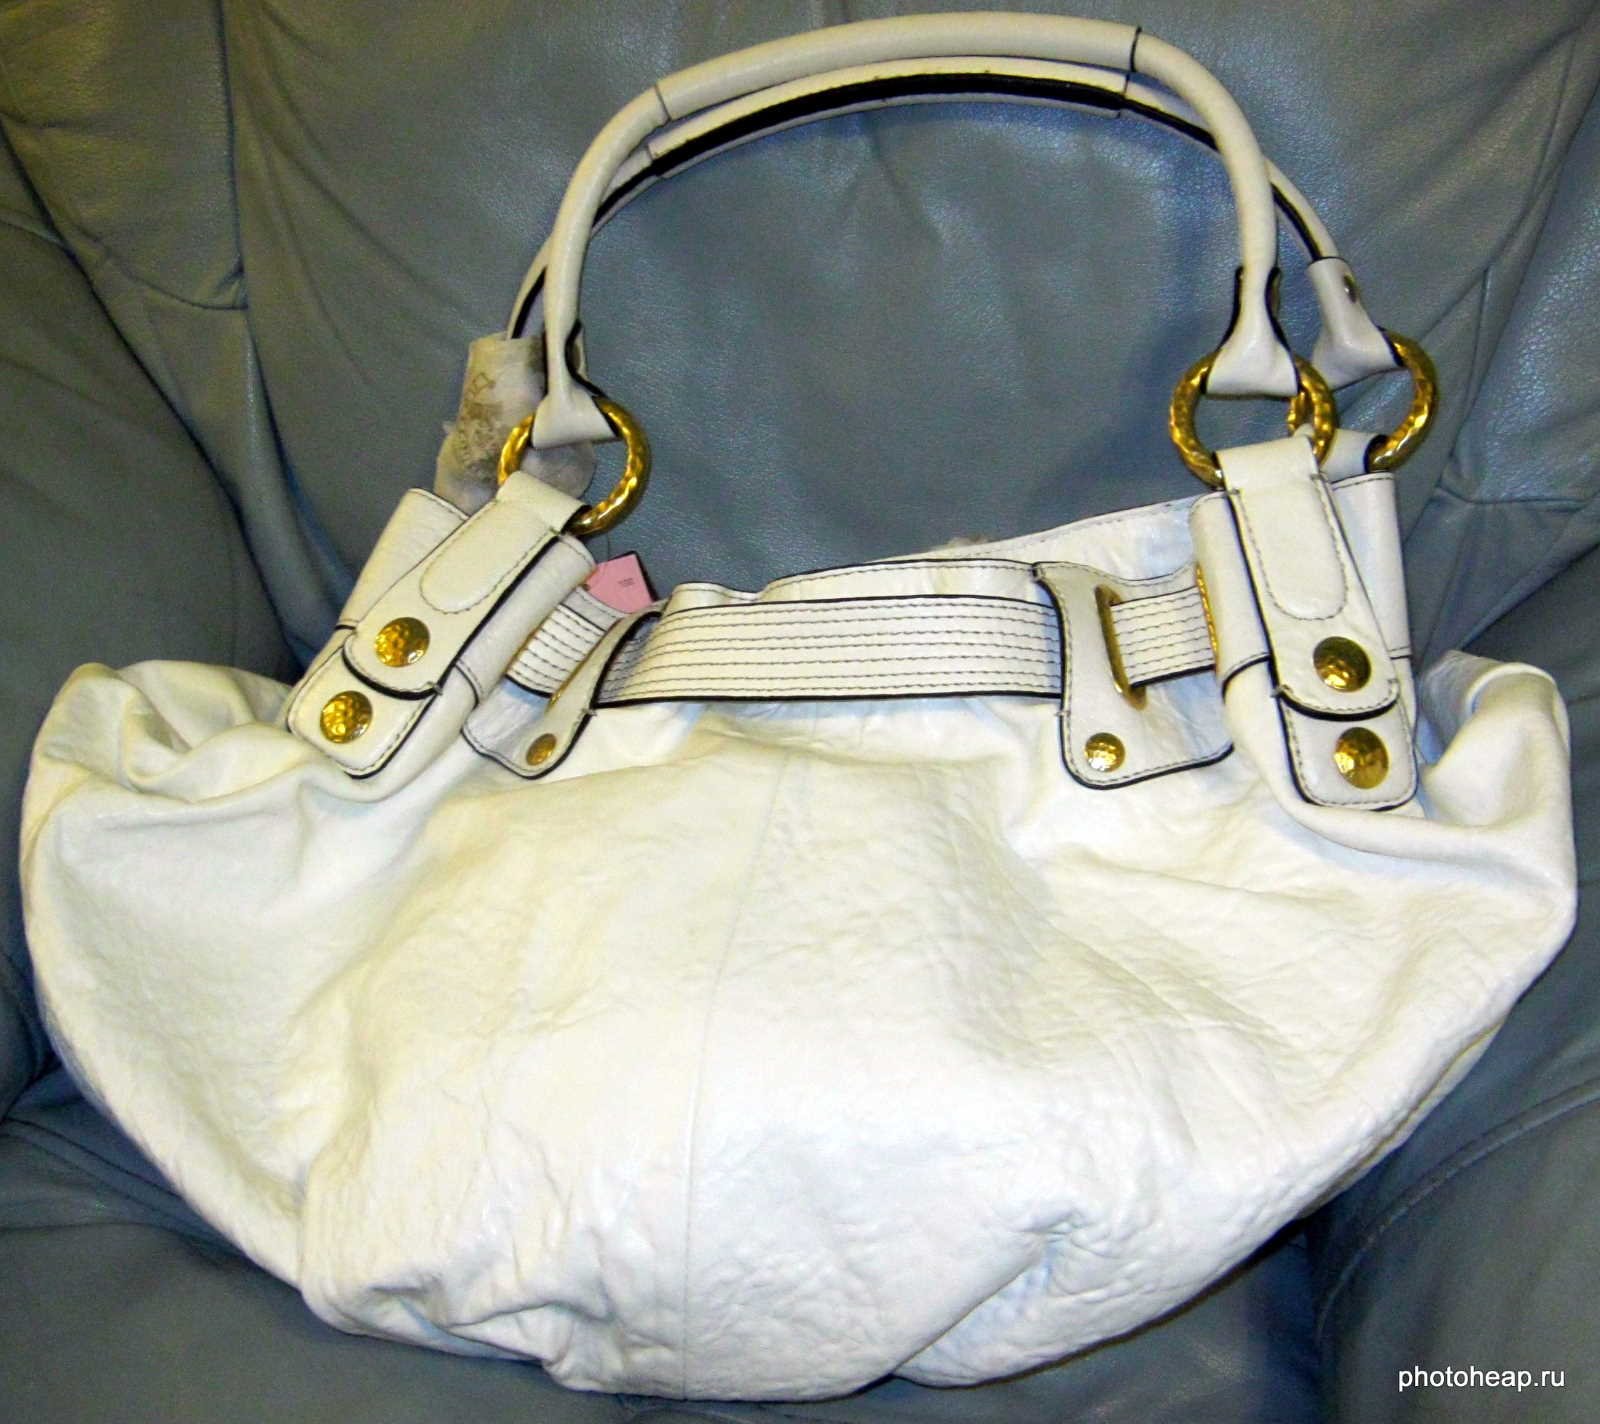 Juicy Couture bag in armchair